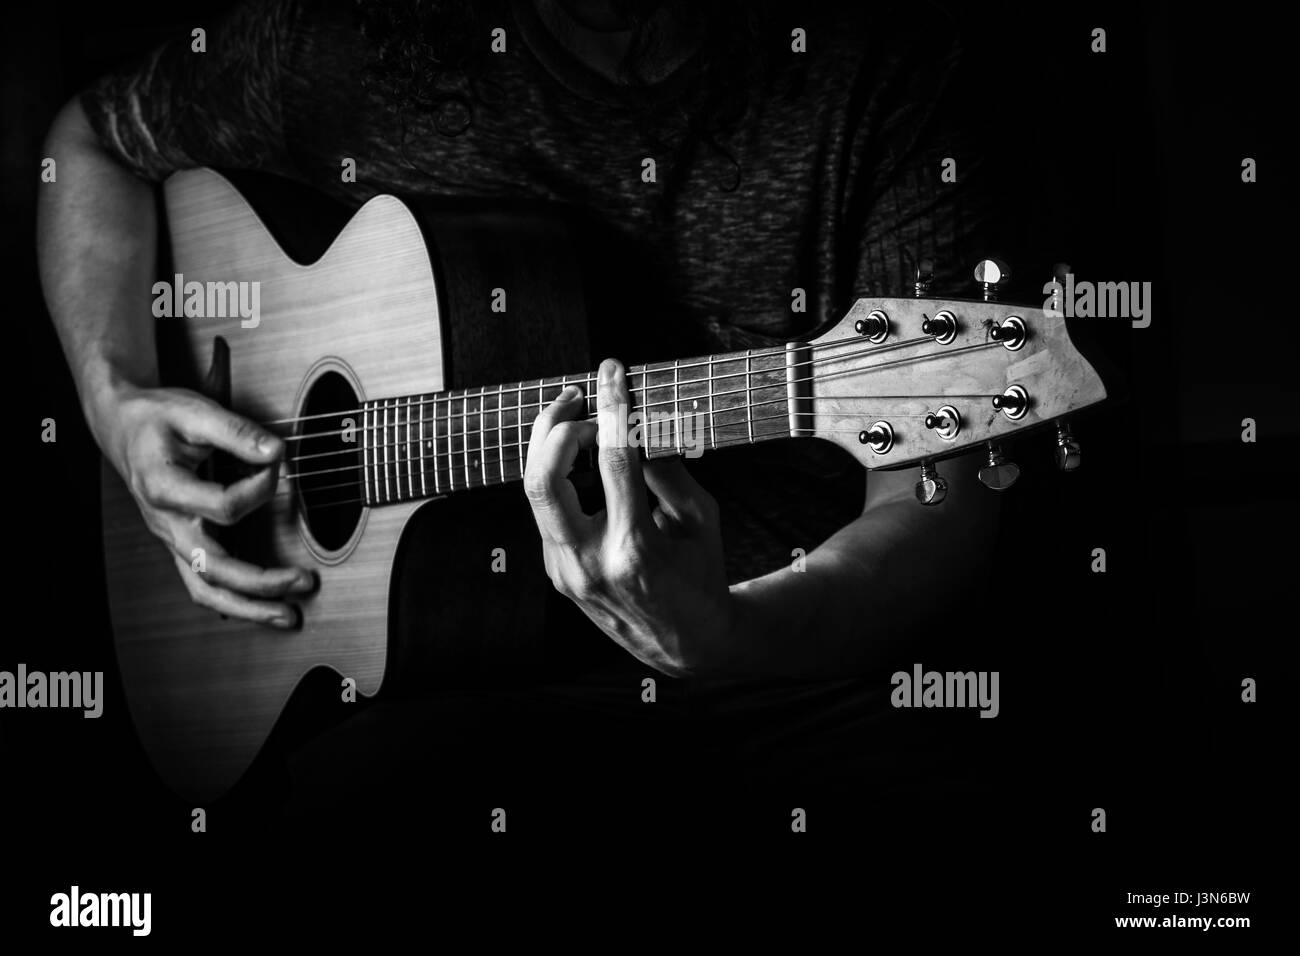 Young man with long curly hair playing an acoustic guitar. Stock Photo